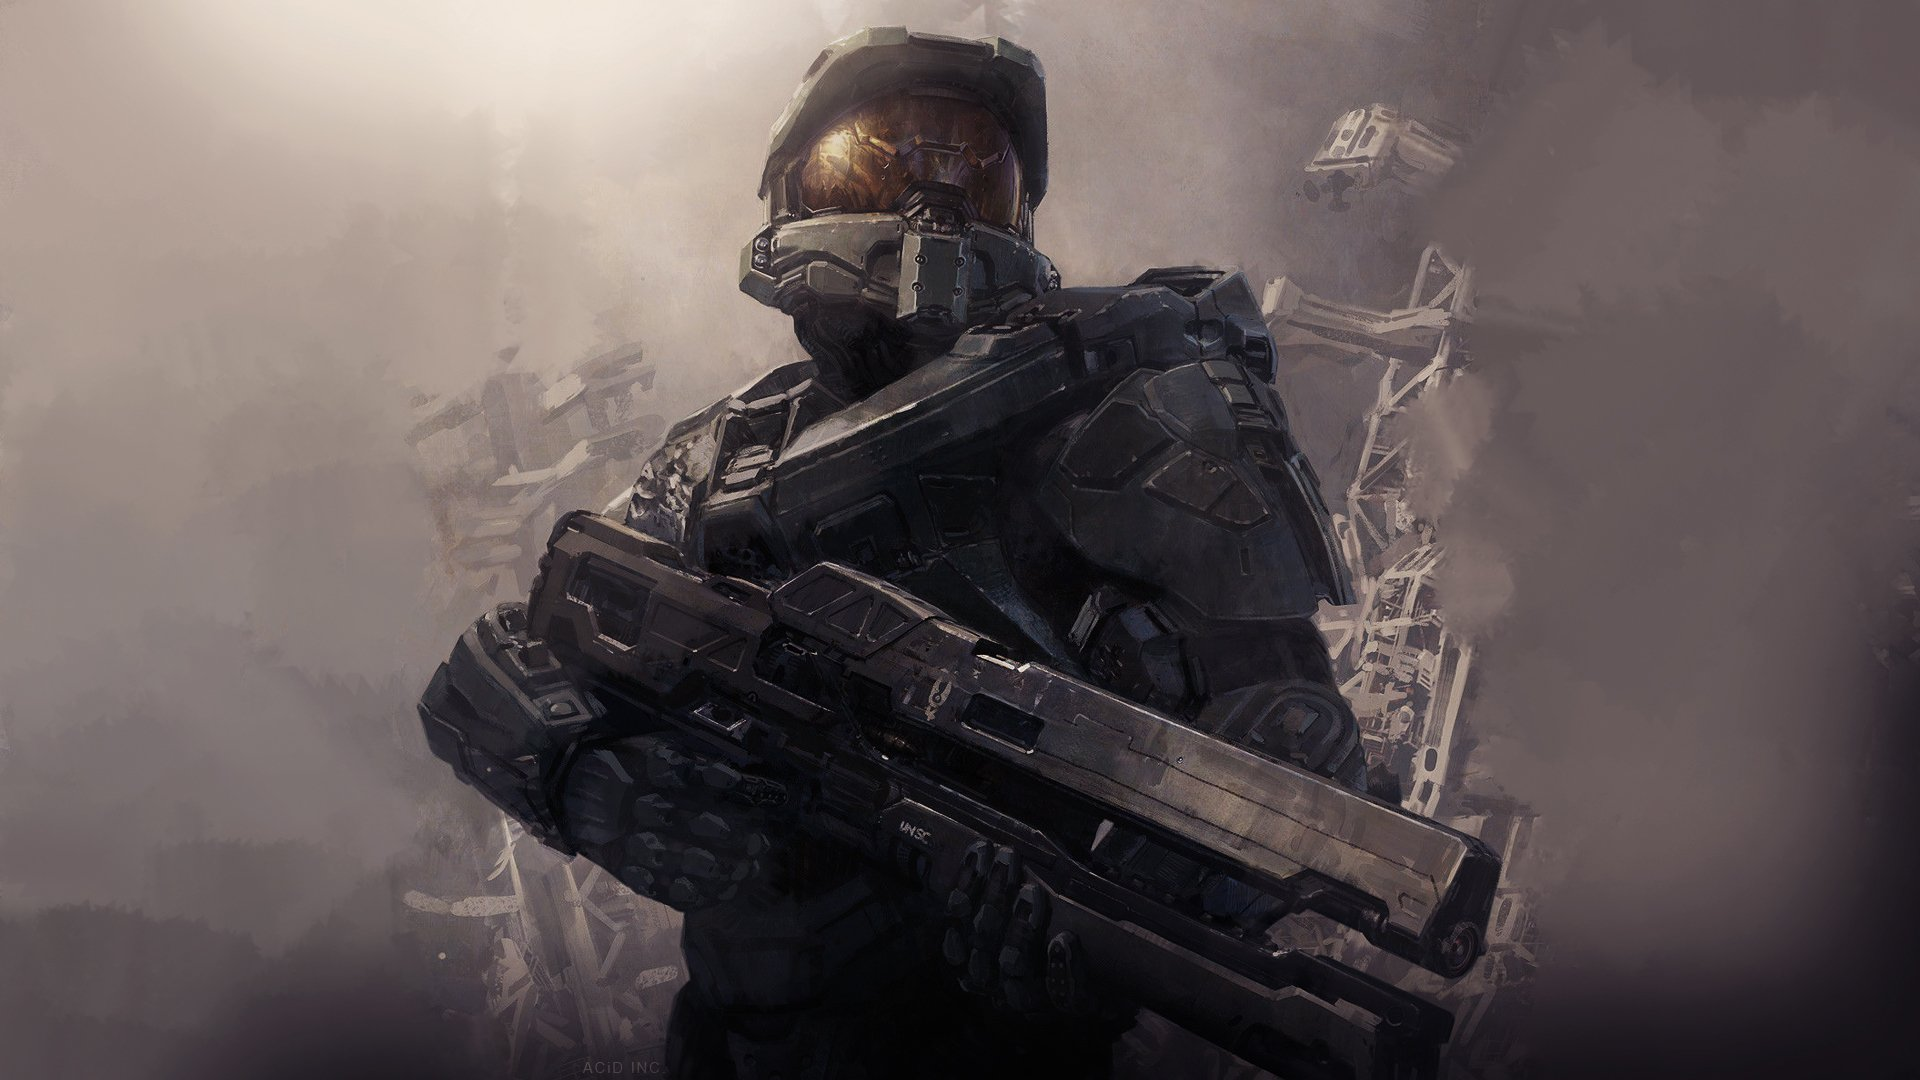 Halo 4 Hd Wallpaper Background Image 1920x1080 Id 393919